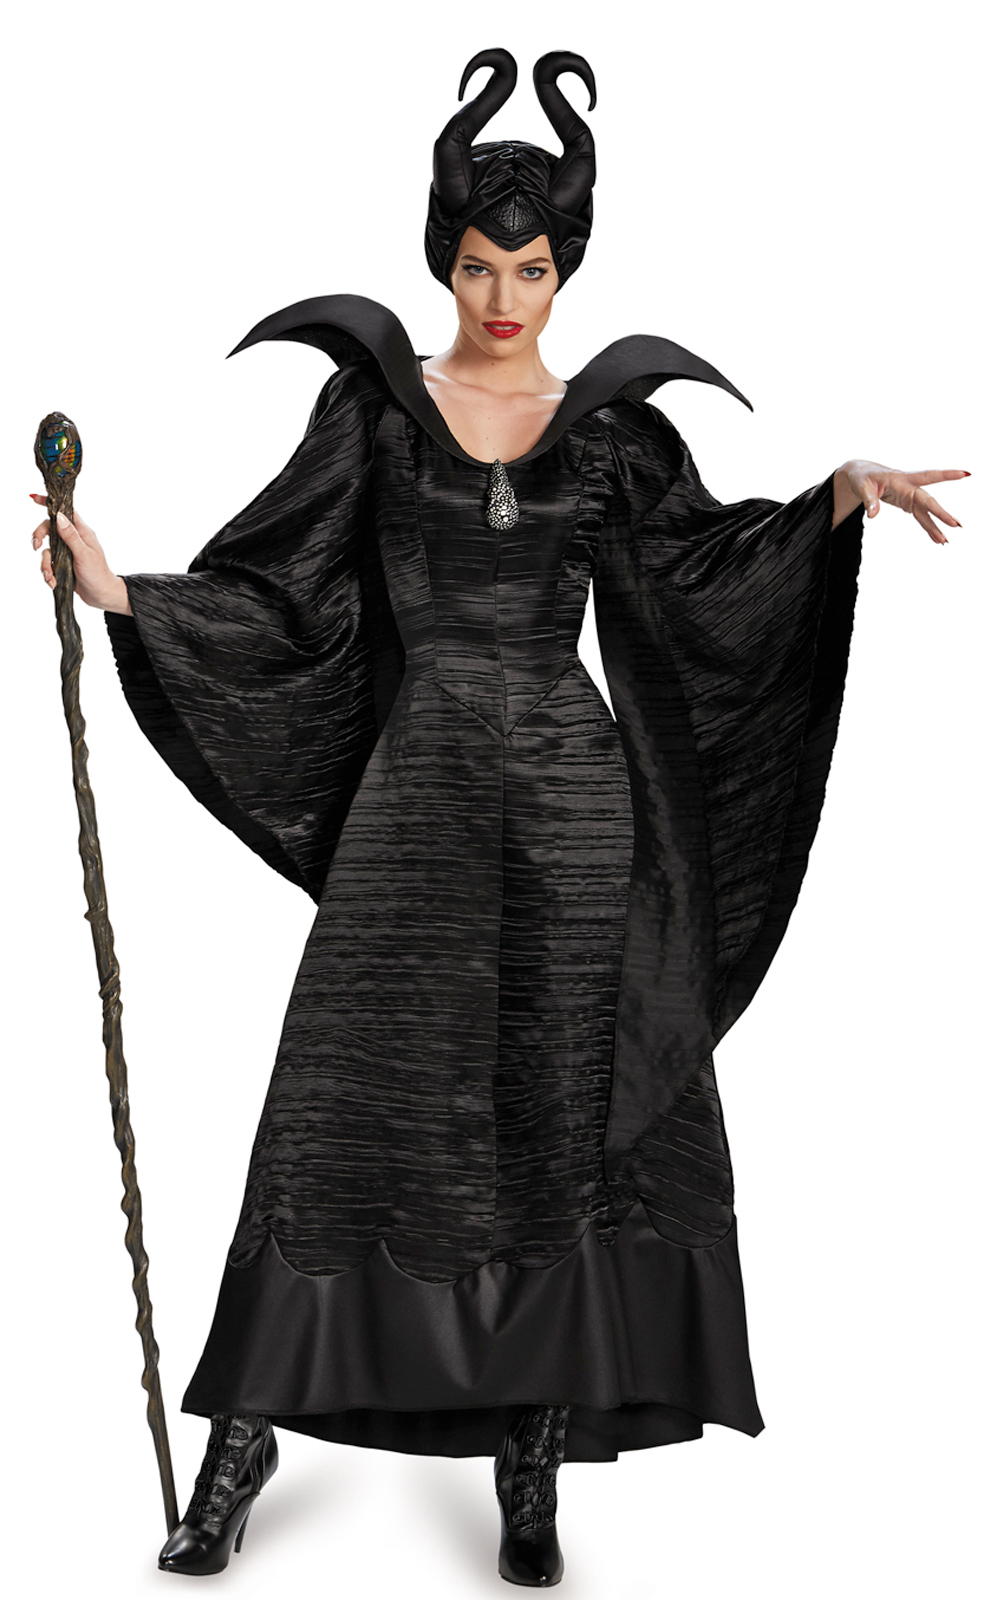 new maleficent deluxe christening black gown adult halloween costume